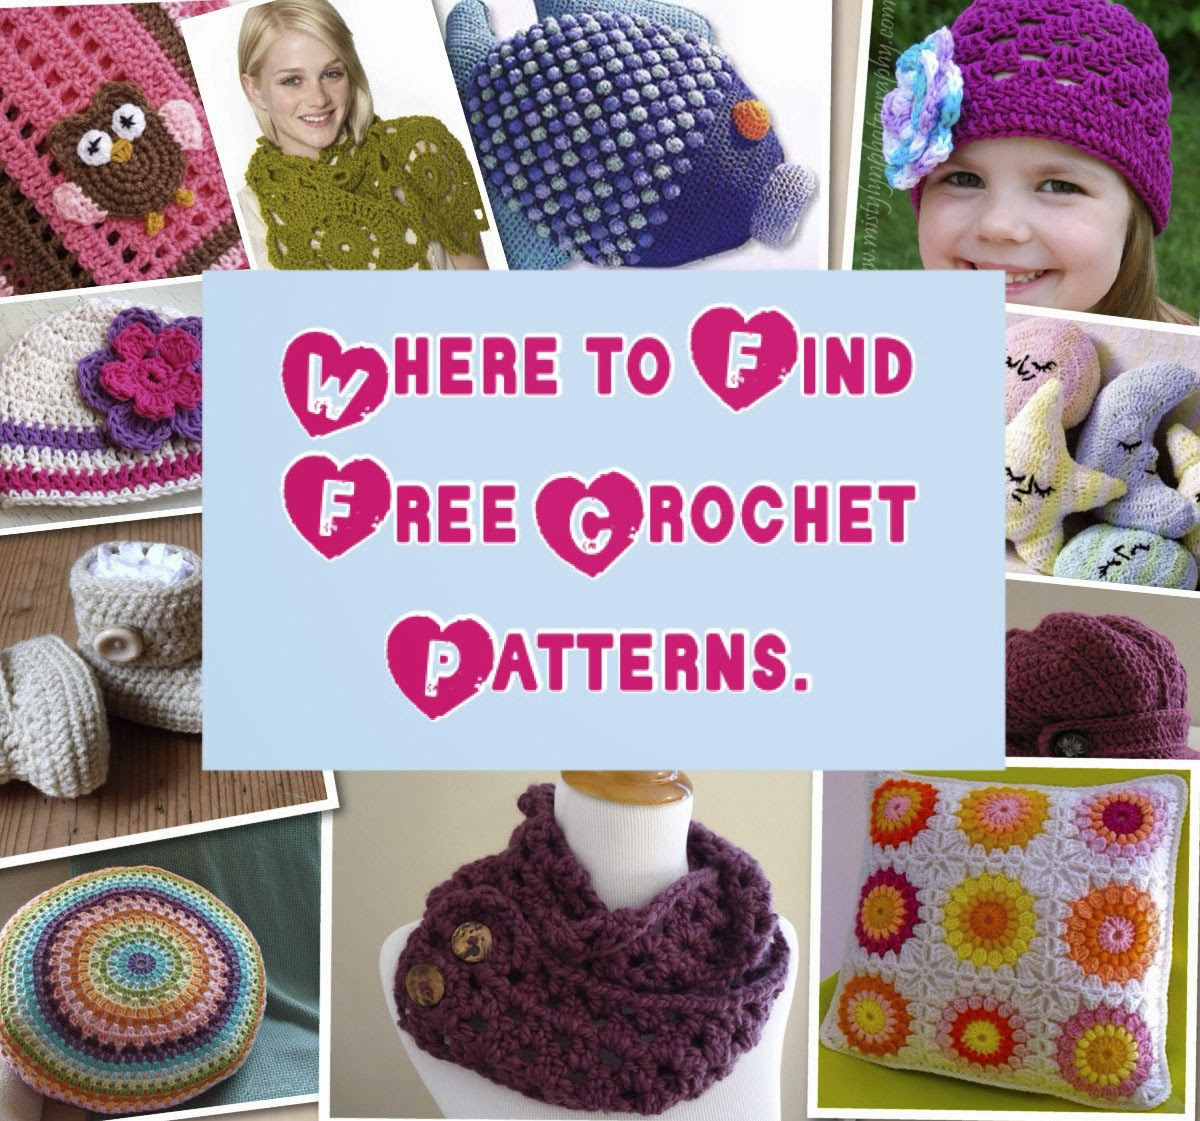 Tampa Bay Crochet: Where to Find Free Crochet Patterns: Directory of ...